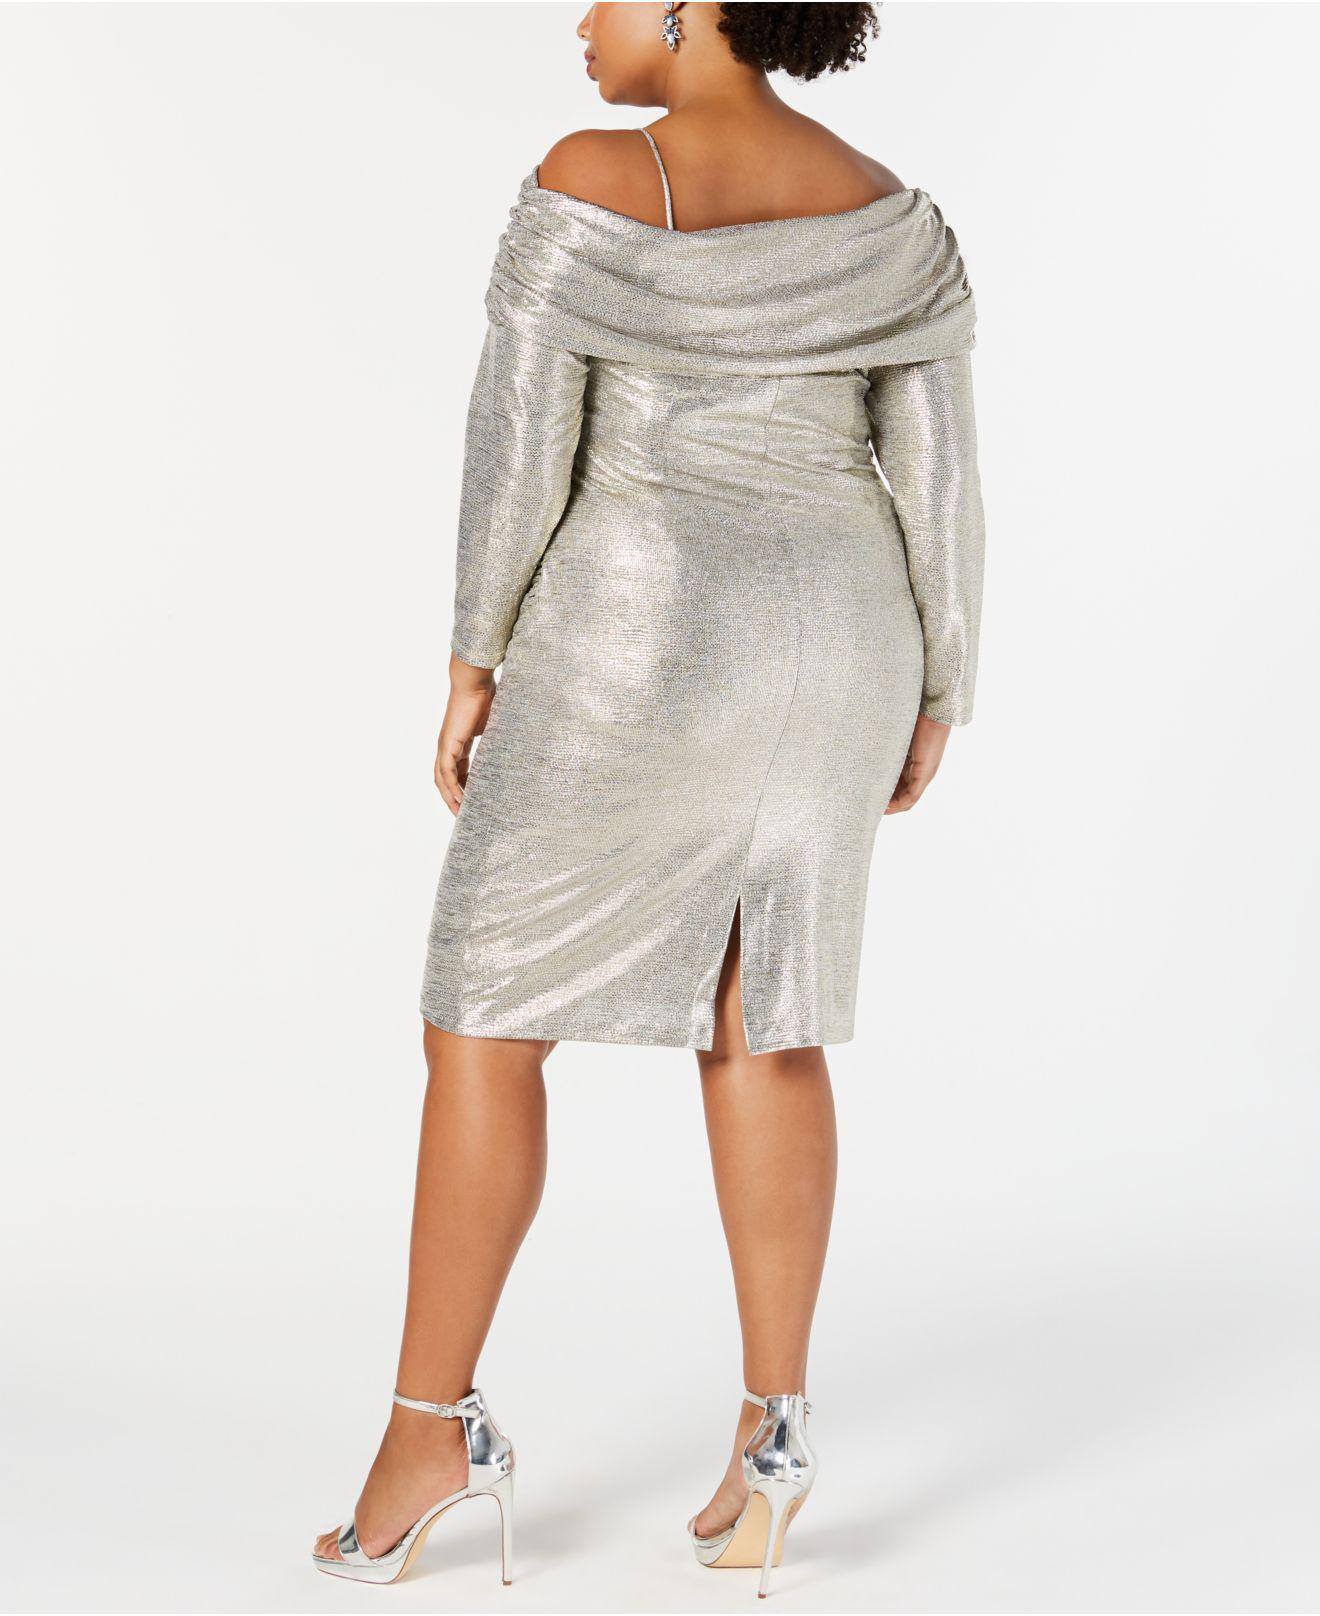 33b40854e99 Lyst - Betsy   Adam Plus Size Metallic Off-the-shoulder Sheath Dress in  Metallic - Save 4%